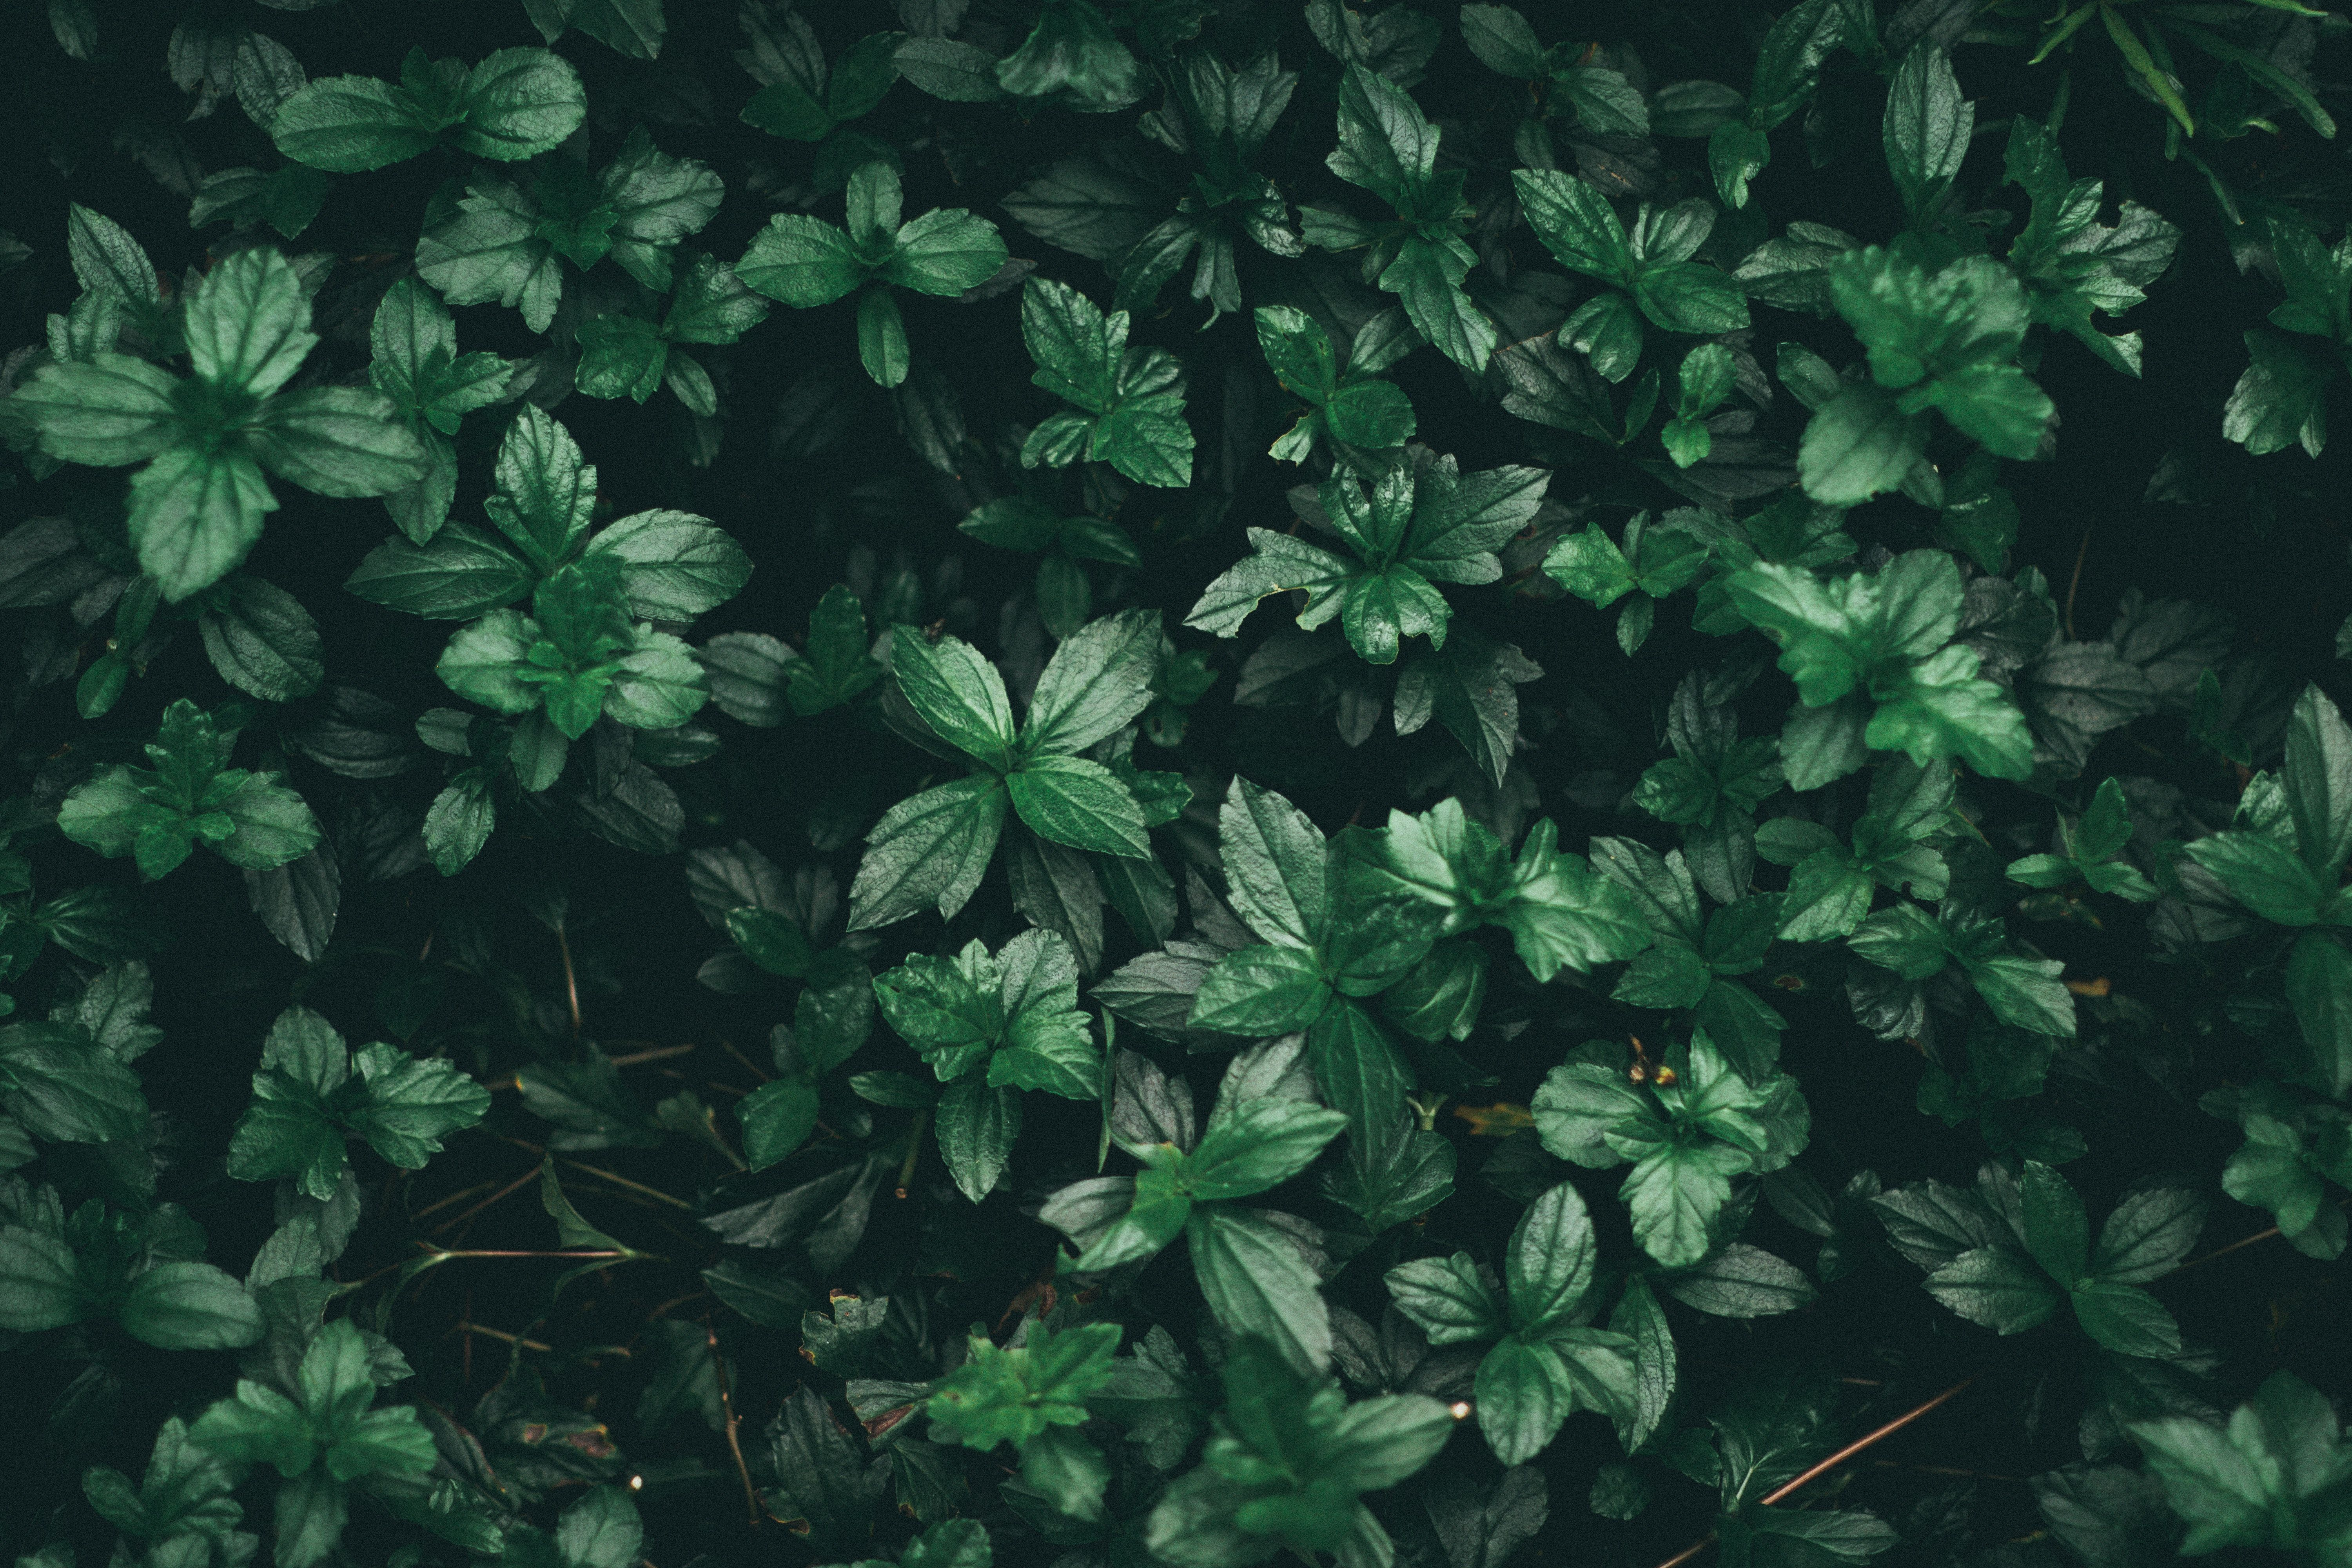 6000x4000 Green Leaf Plant · Free Stock Photo